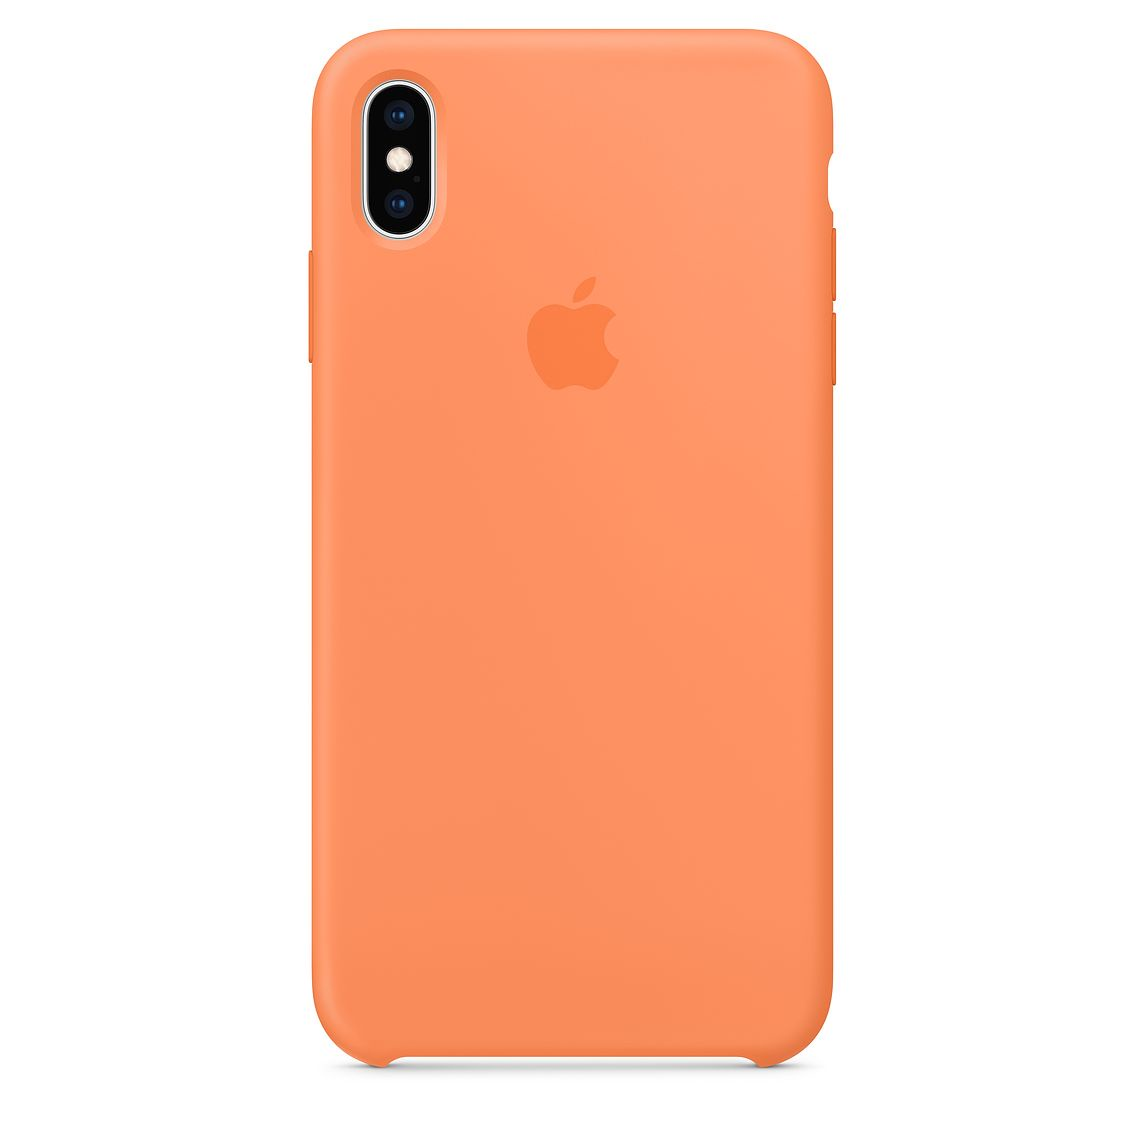 Чехол Apple Silicone Case для iPhone XS Max, Papaya чехол для apple iphone xs max silicone case nectarine